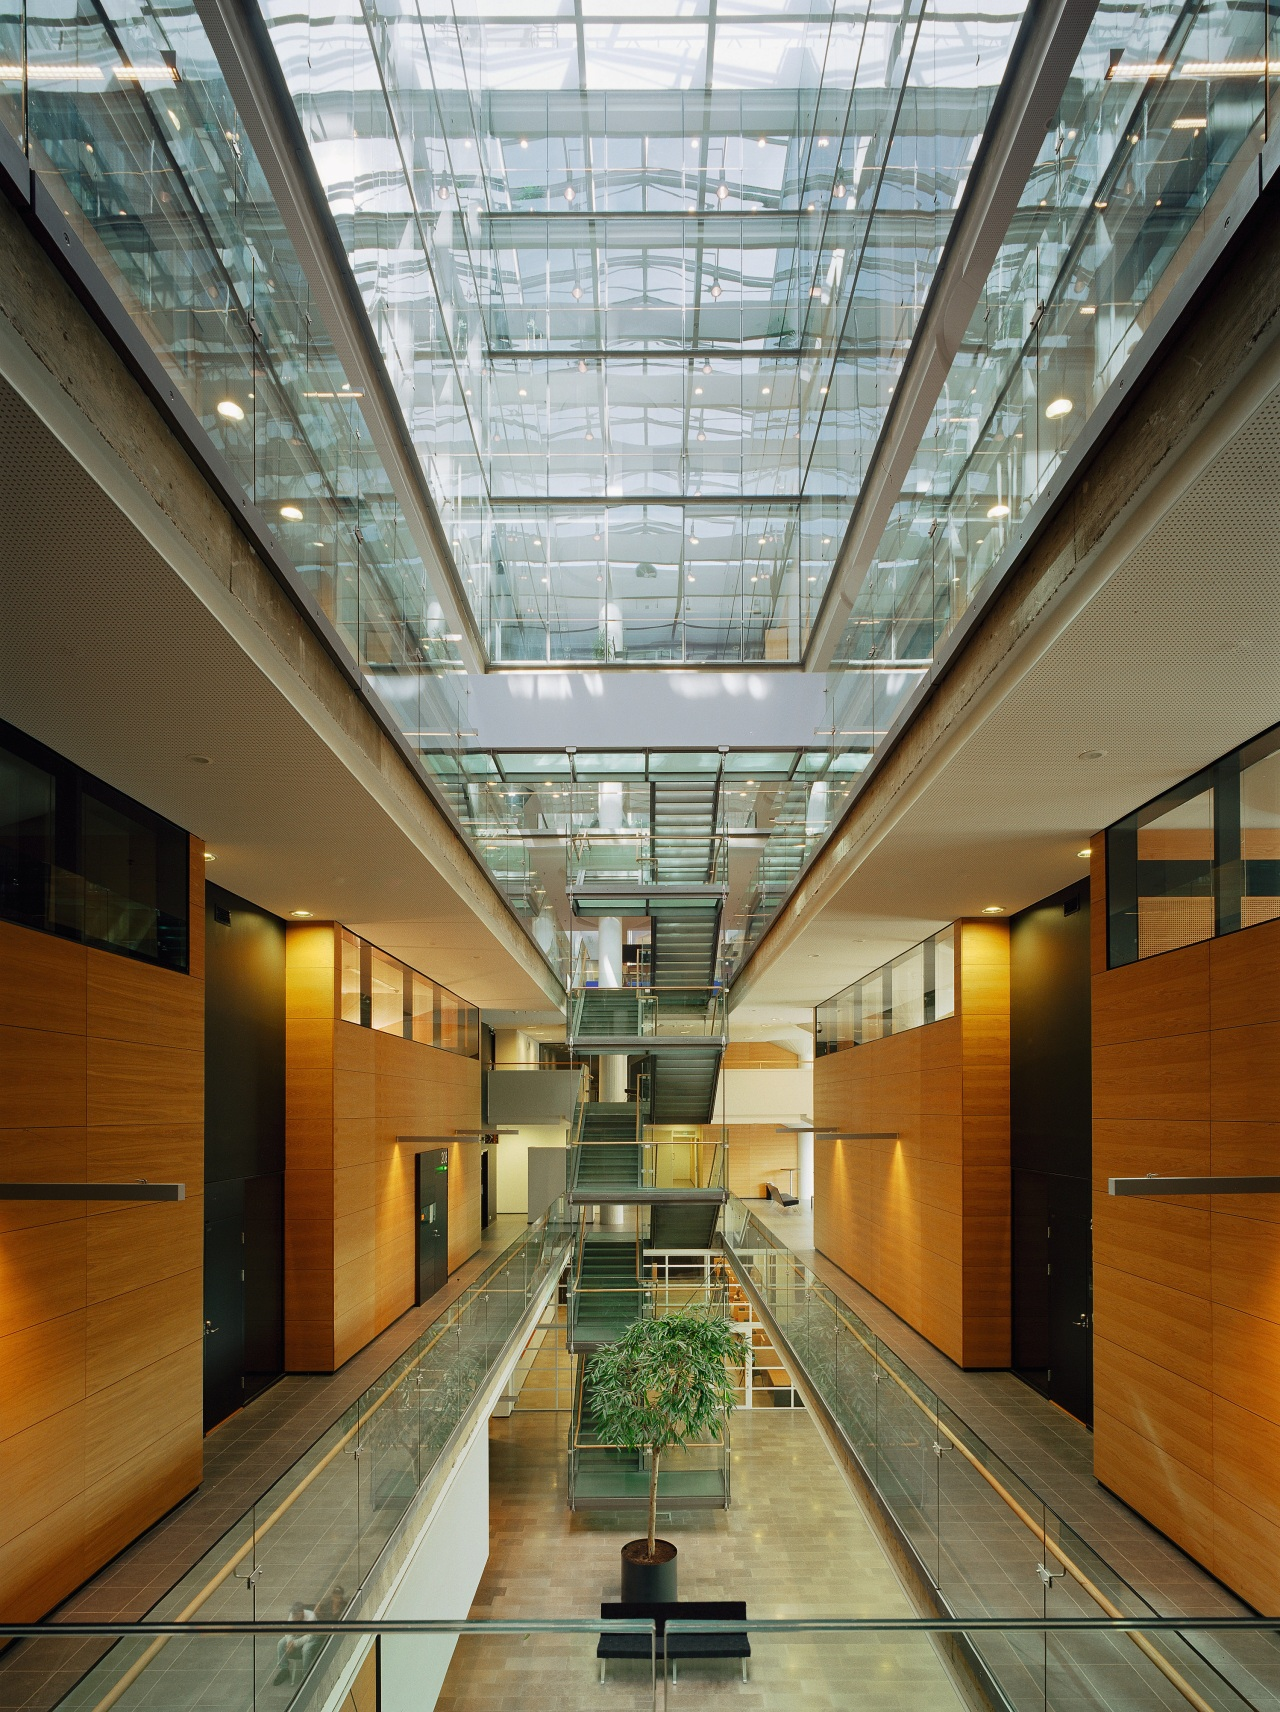 An interior view of the building. apartment, architecture, ceiling, condominium, daylighting, glass, headquarters, interior design, lobby, metropolitan area, real estate, brown, gray